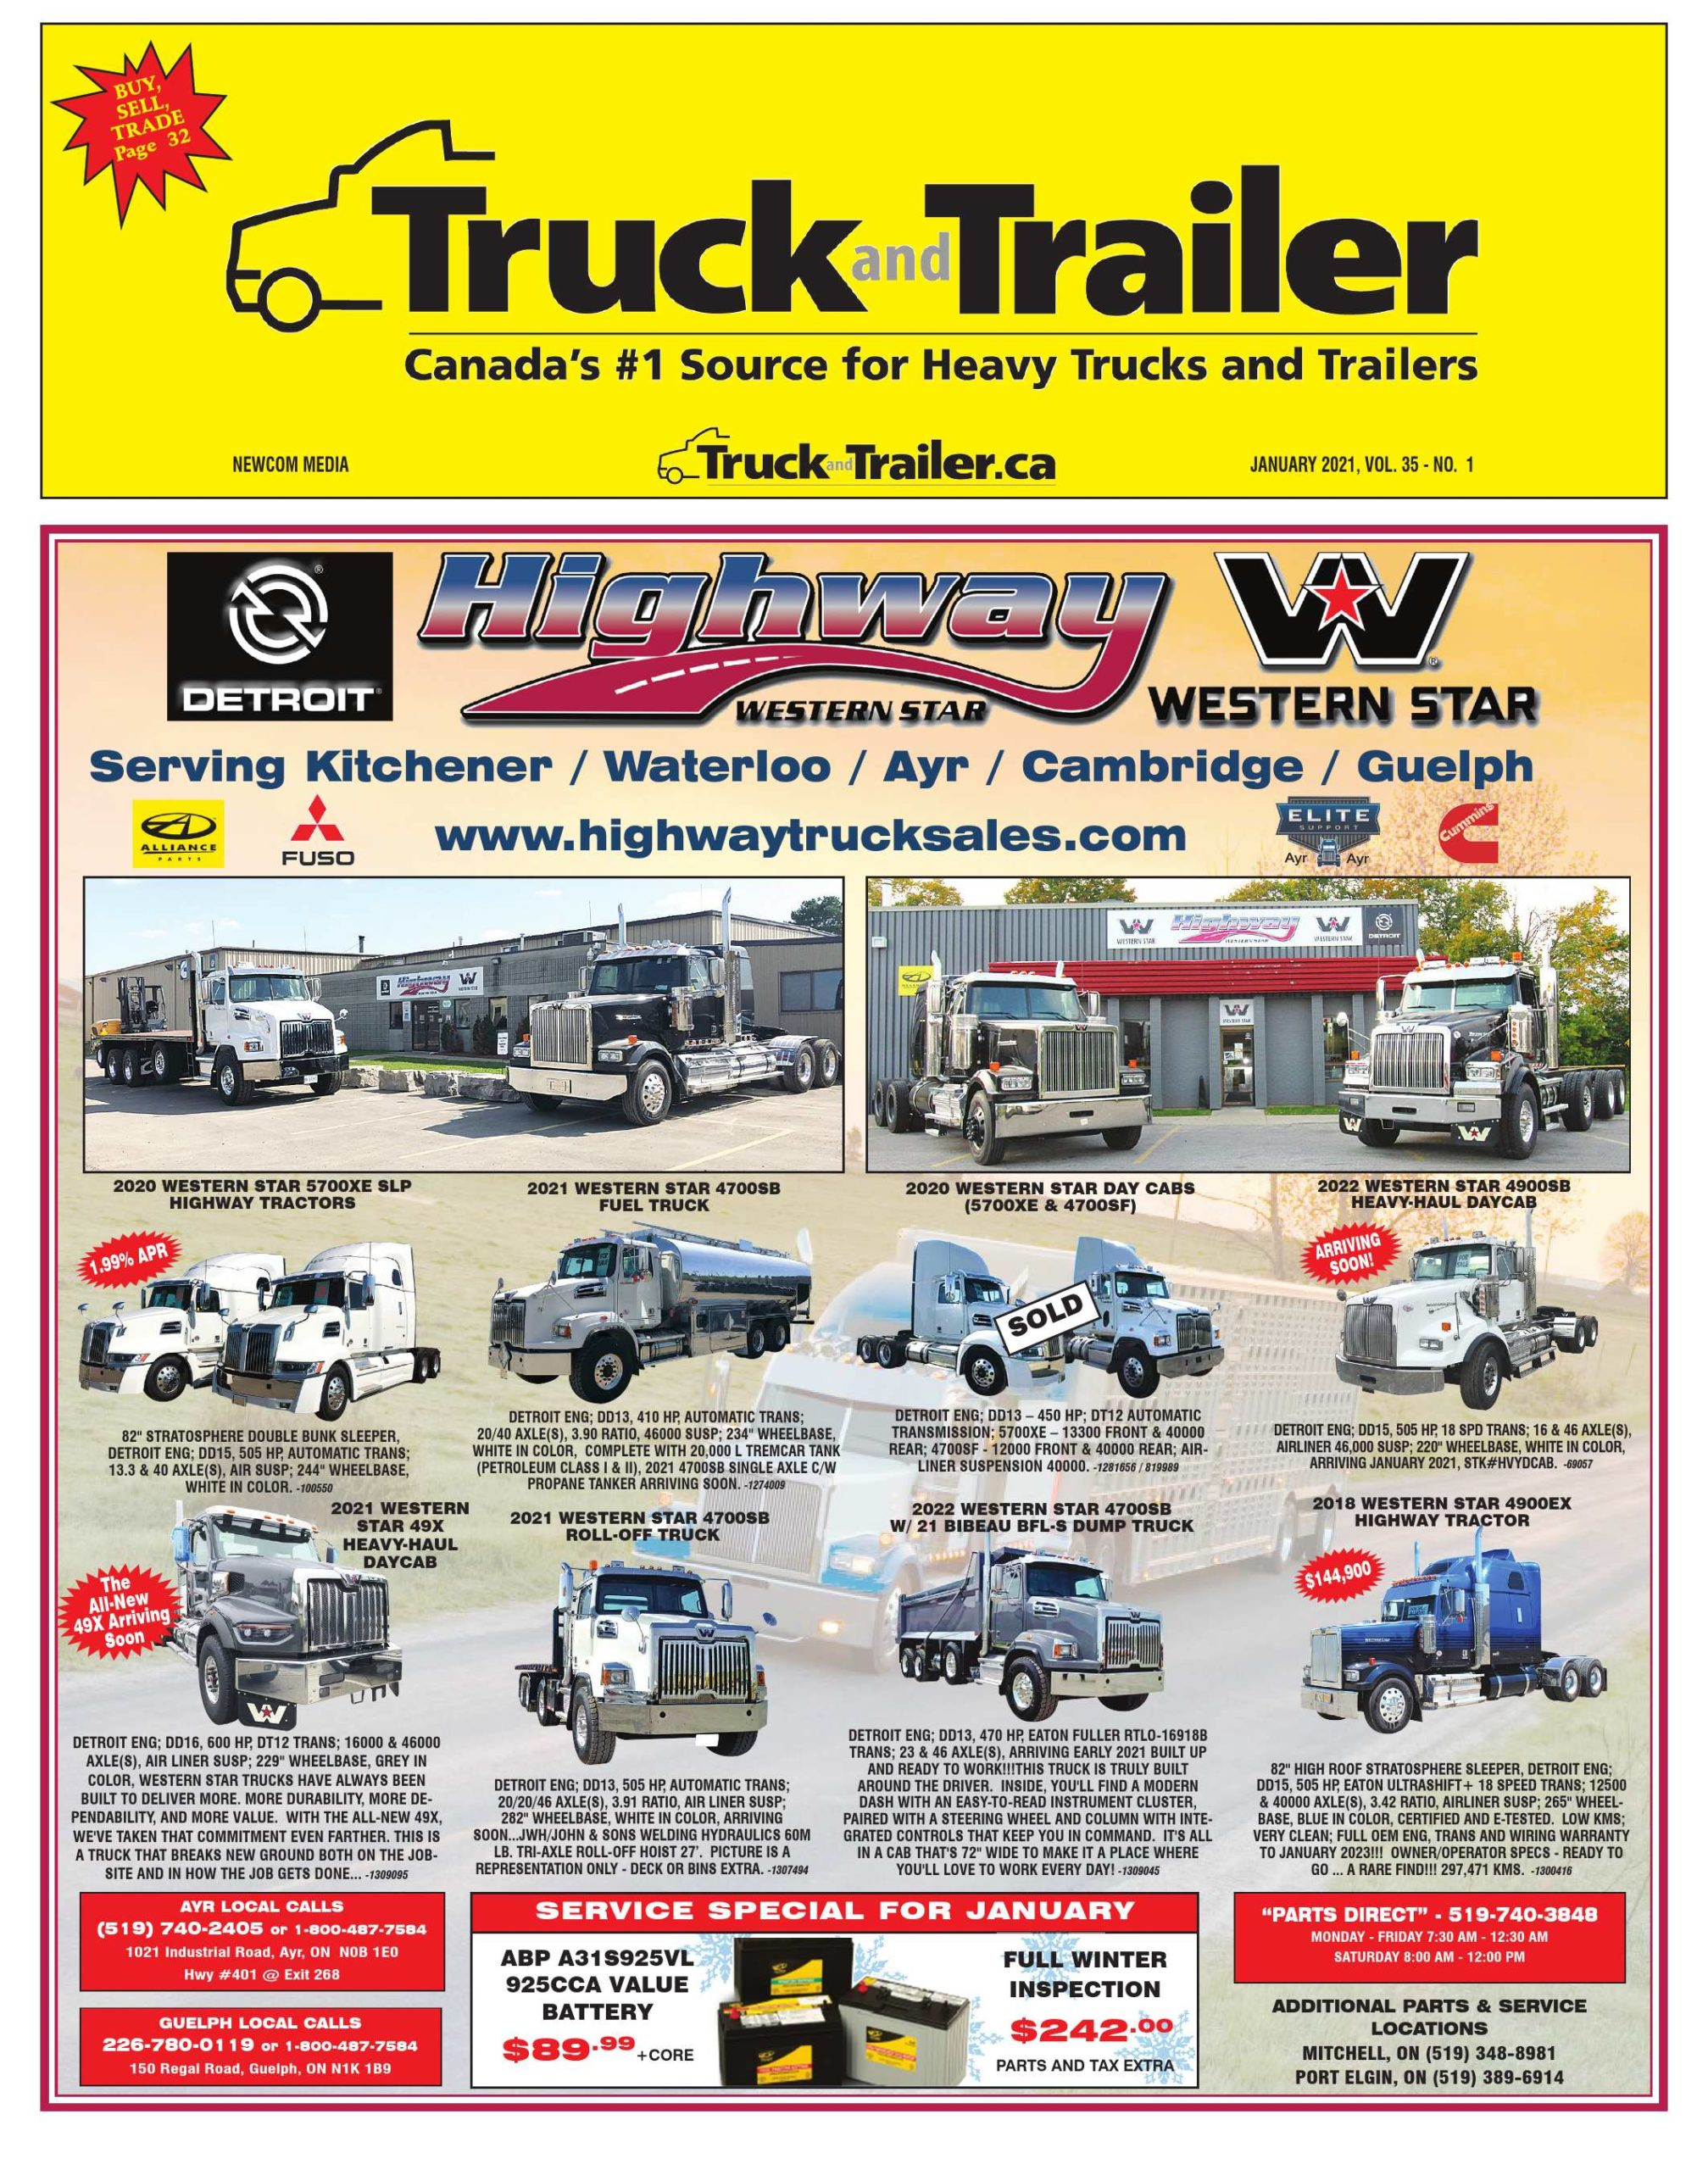 Truck and Trailer – 1 janvier 2021